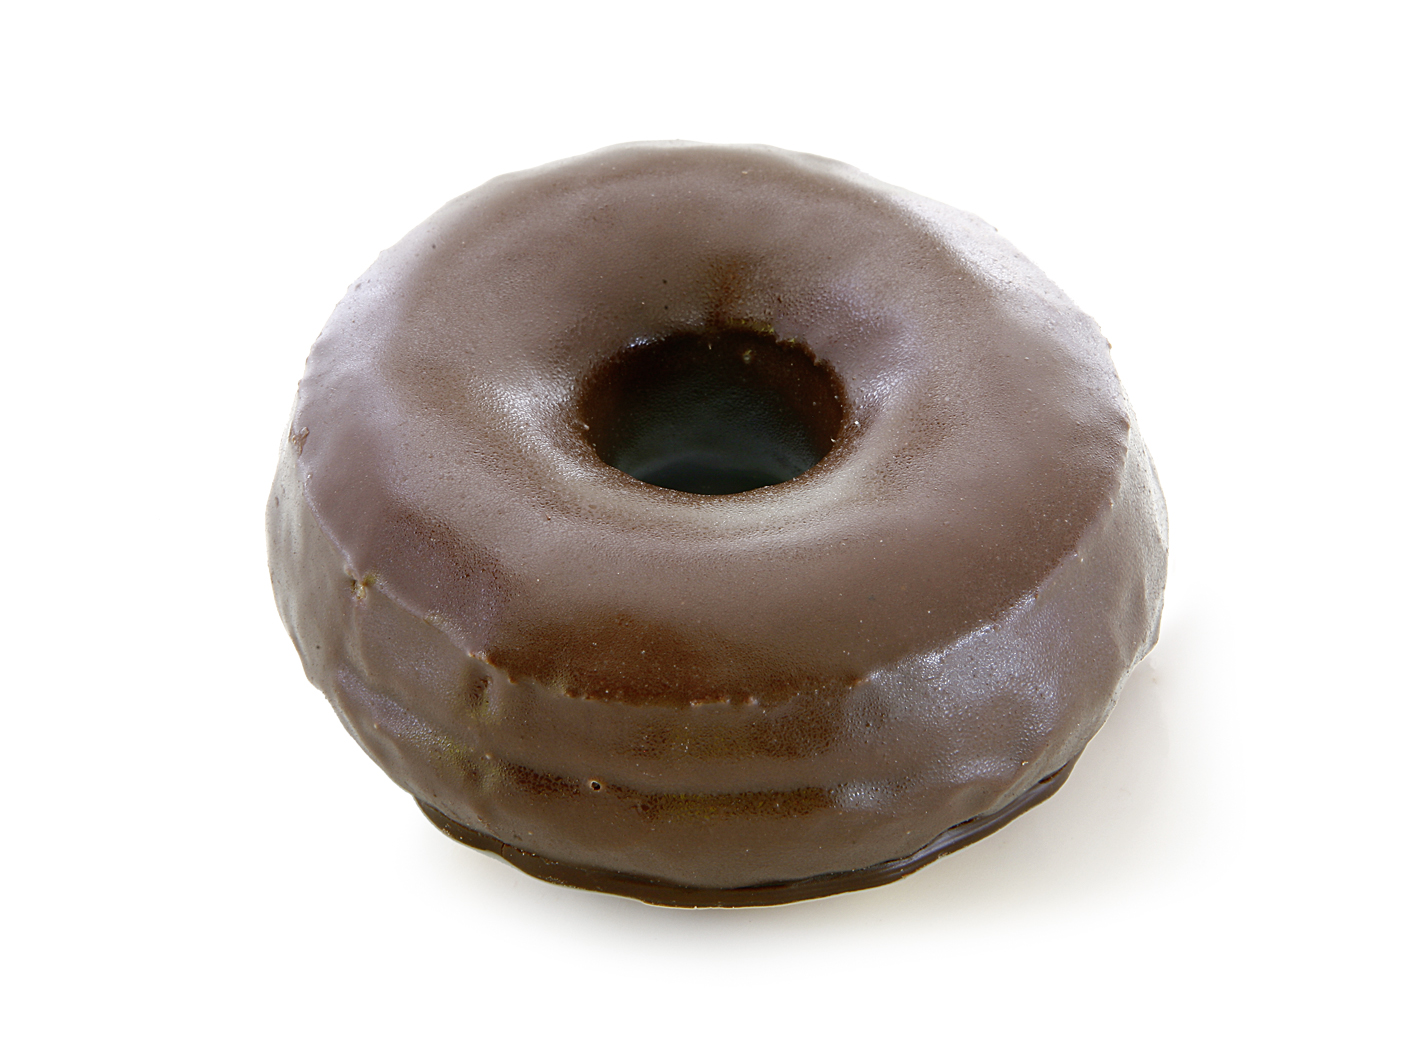 Donut Black - Fried yeast dough/ completely covered with dark chocolate coating/ thaw only/ diameter: 9.5 cm